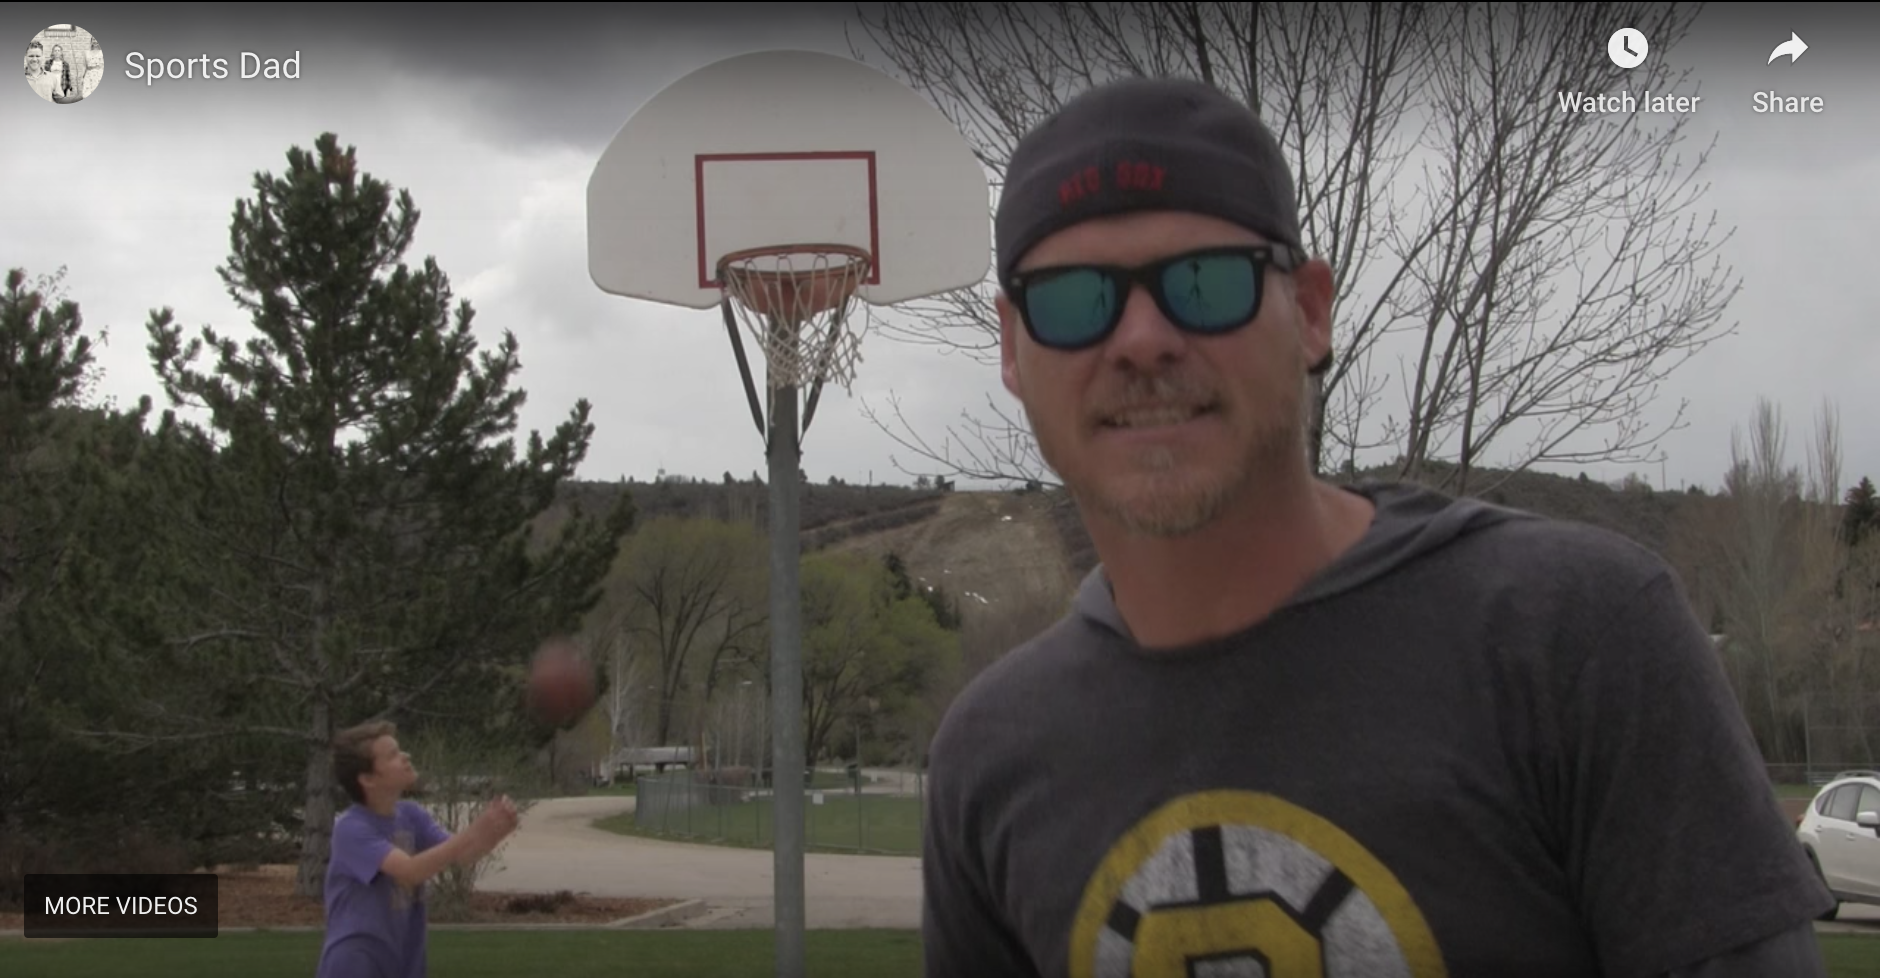 Over zealous sports dad music video - worth the watch